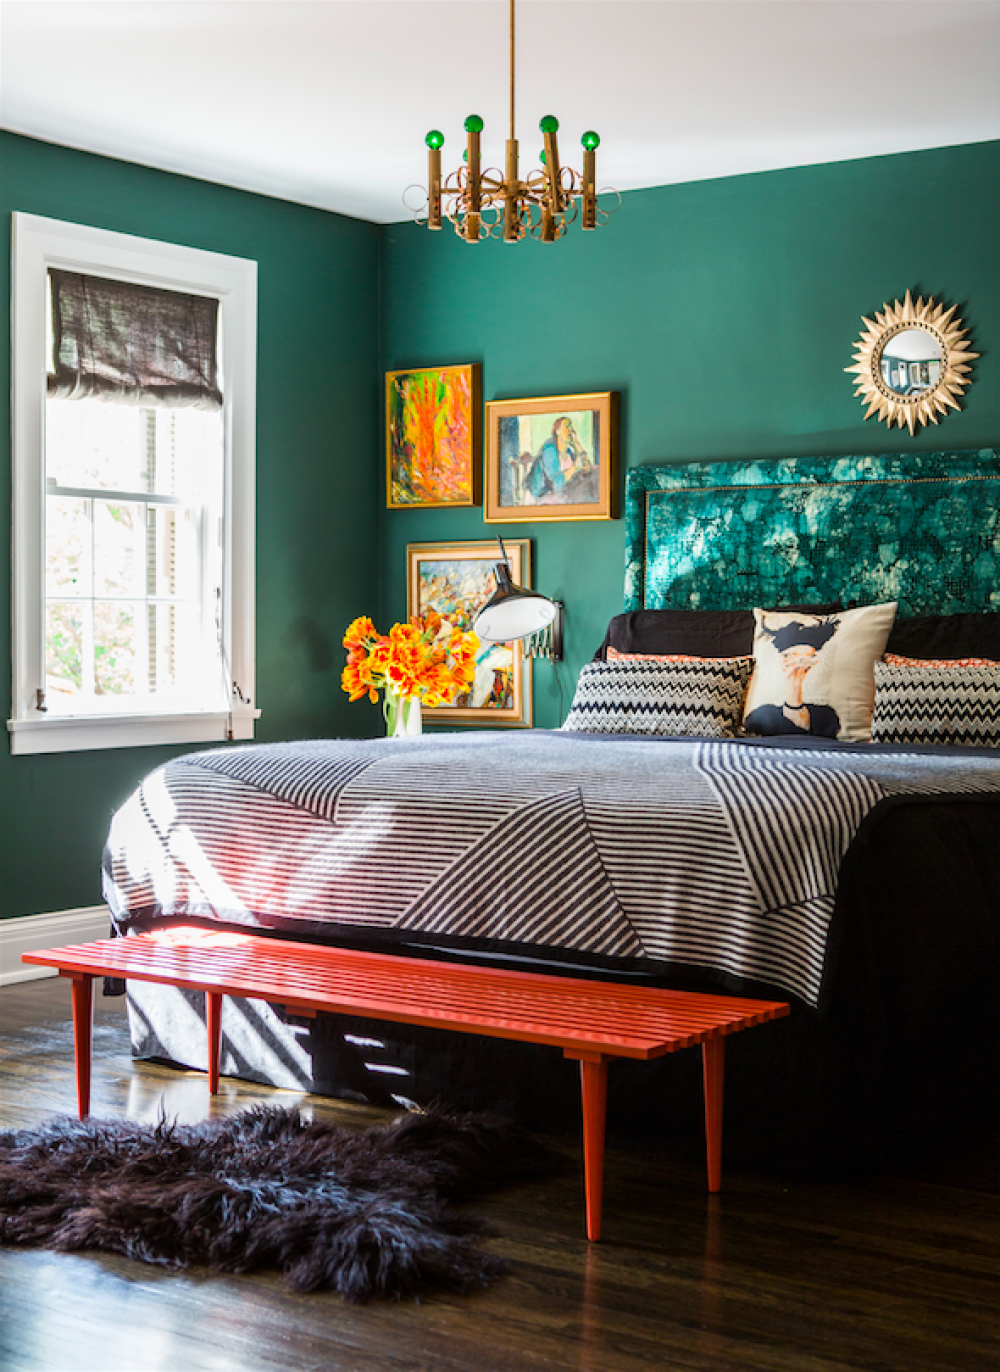 12 Times Complementary Colors Looked Totally Badass Together